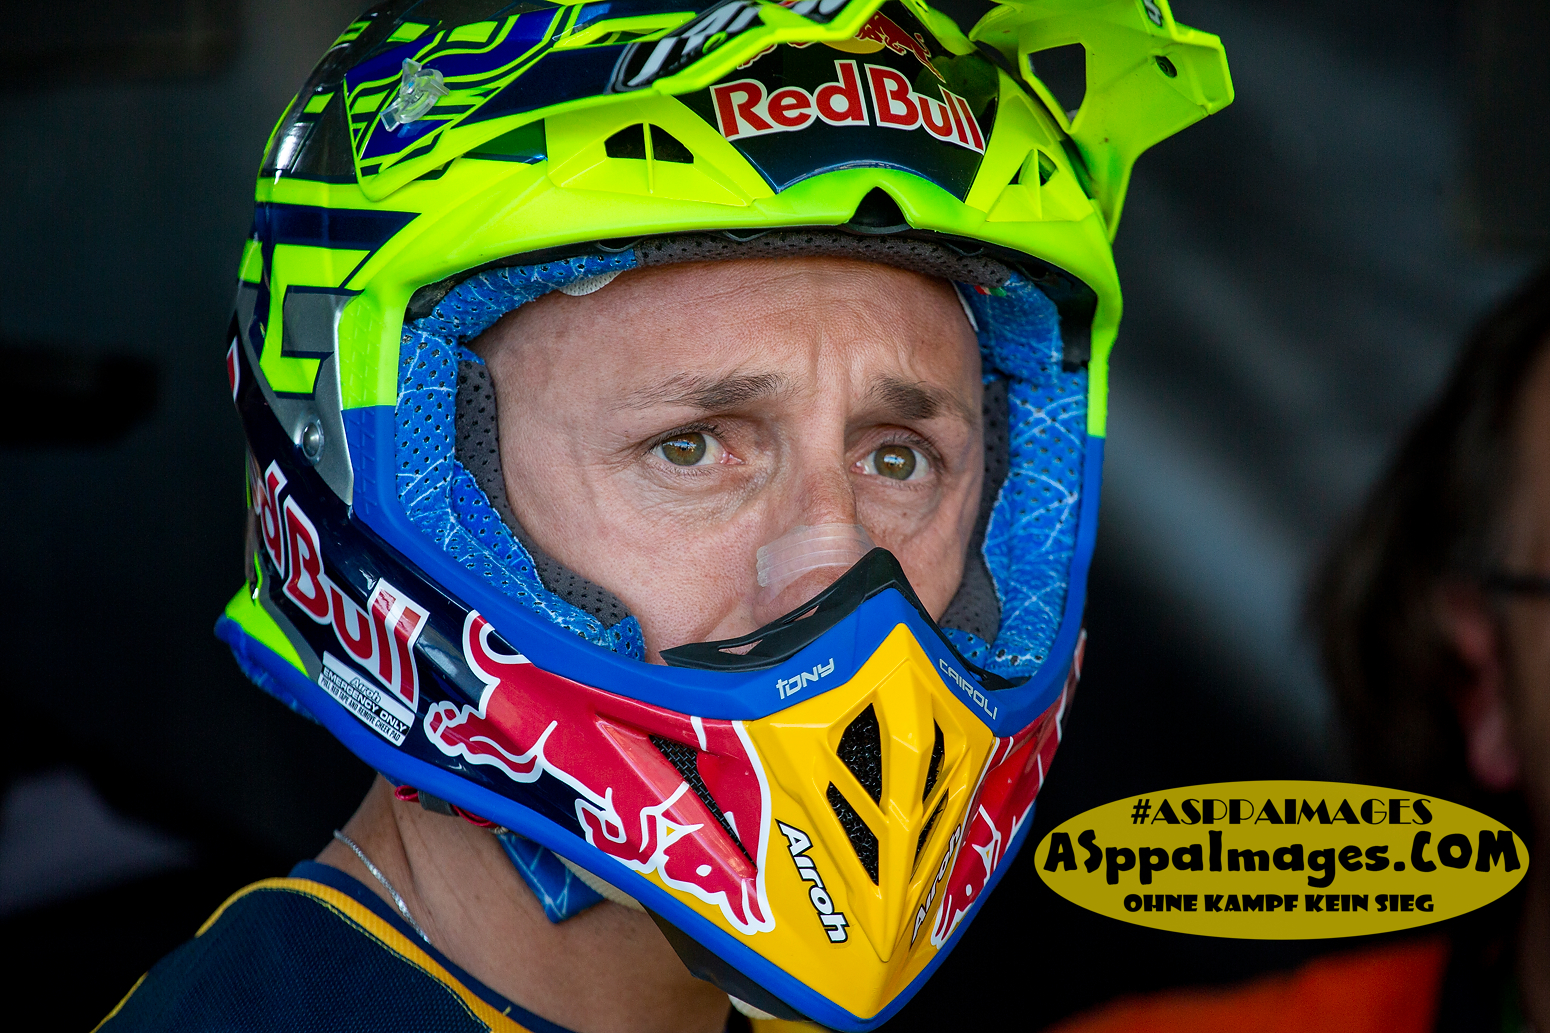 1621_2018.FIM.MX.GP.Round.Russia.Orlyonok.Track.Day.3.ASppaImages.COM by alseryogin.